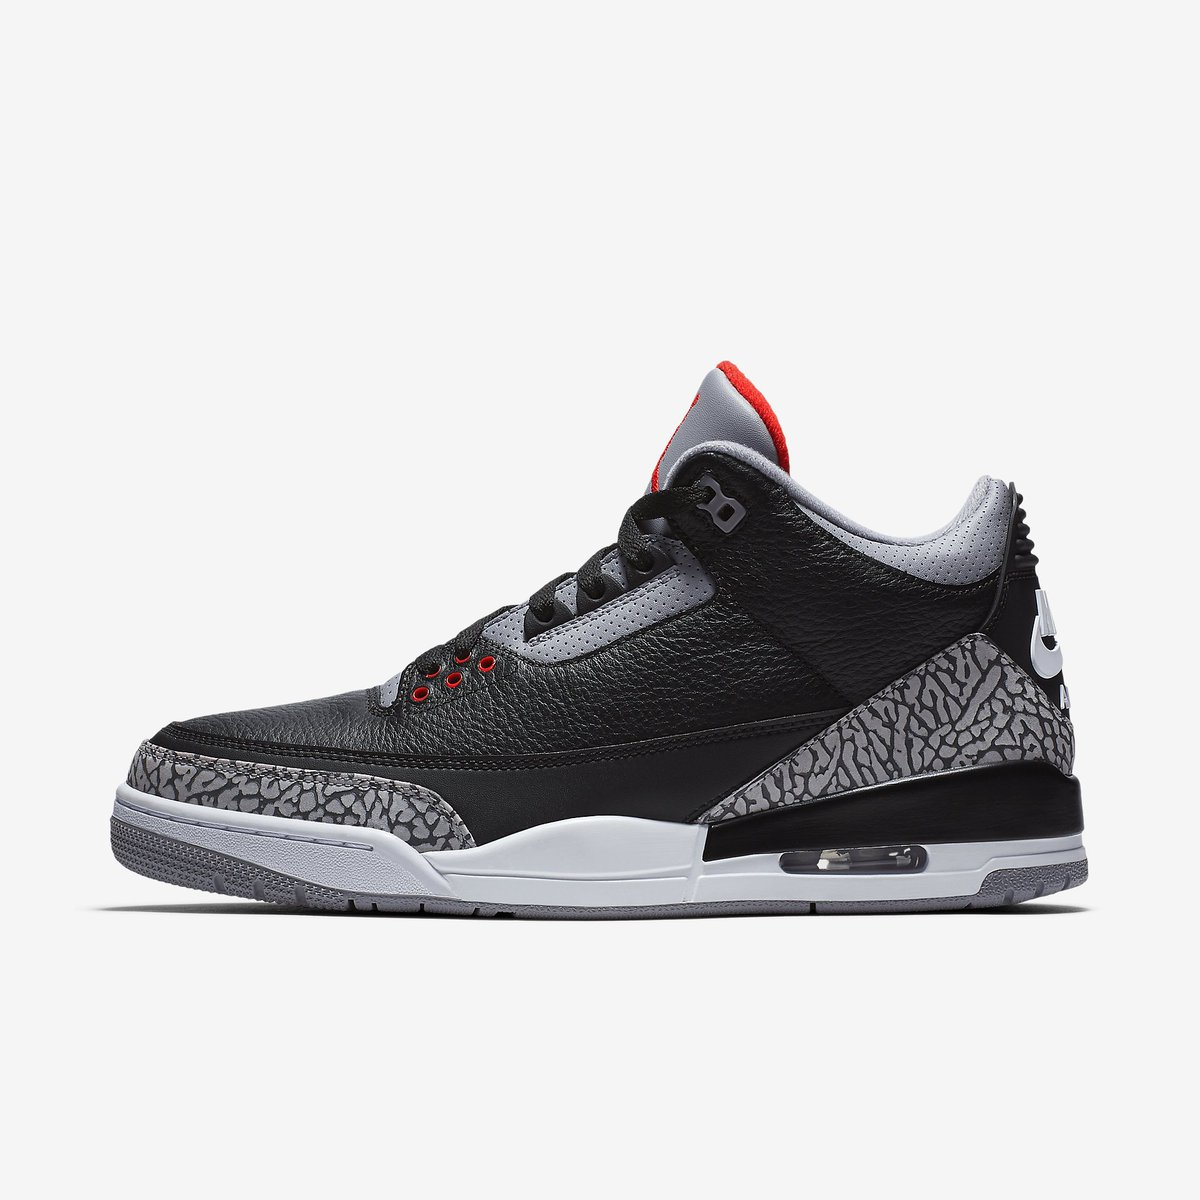 J23 IPhone App On Twitter Jordan 3 Retro OG Black Cement Official Images February 17th 200 Tco XstcWh2UYm